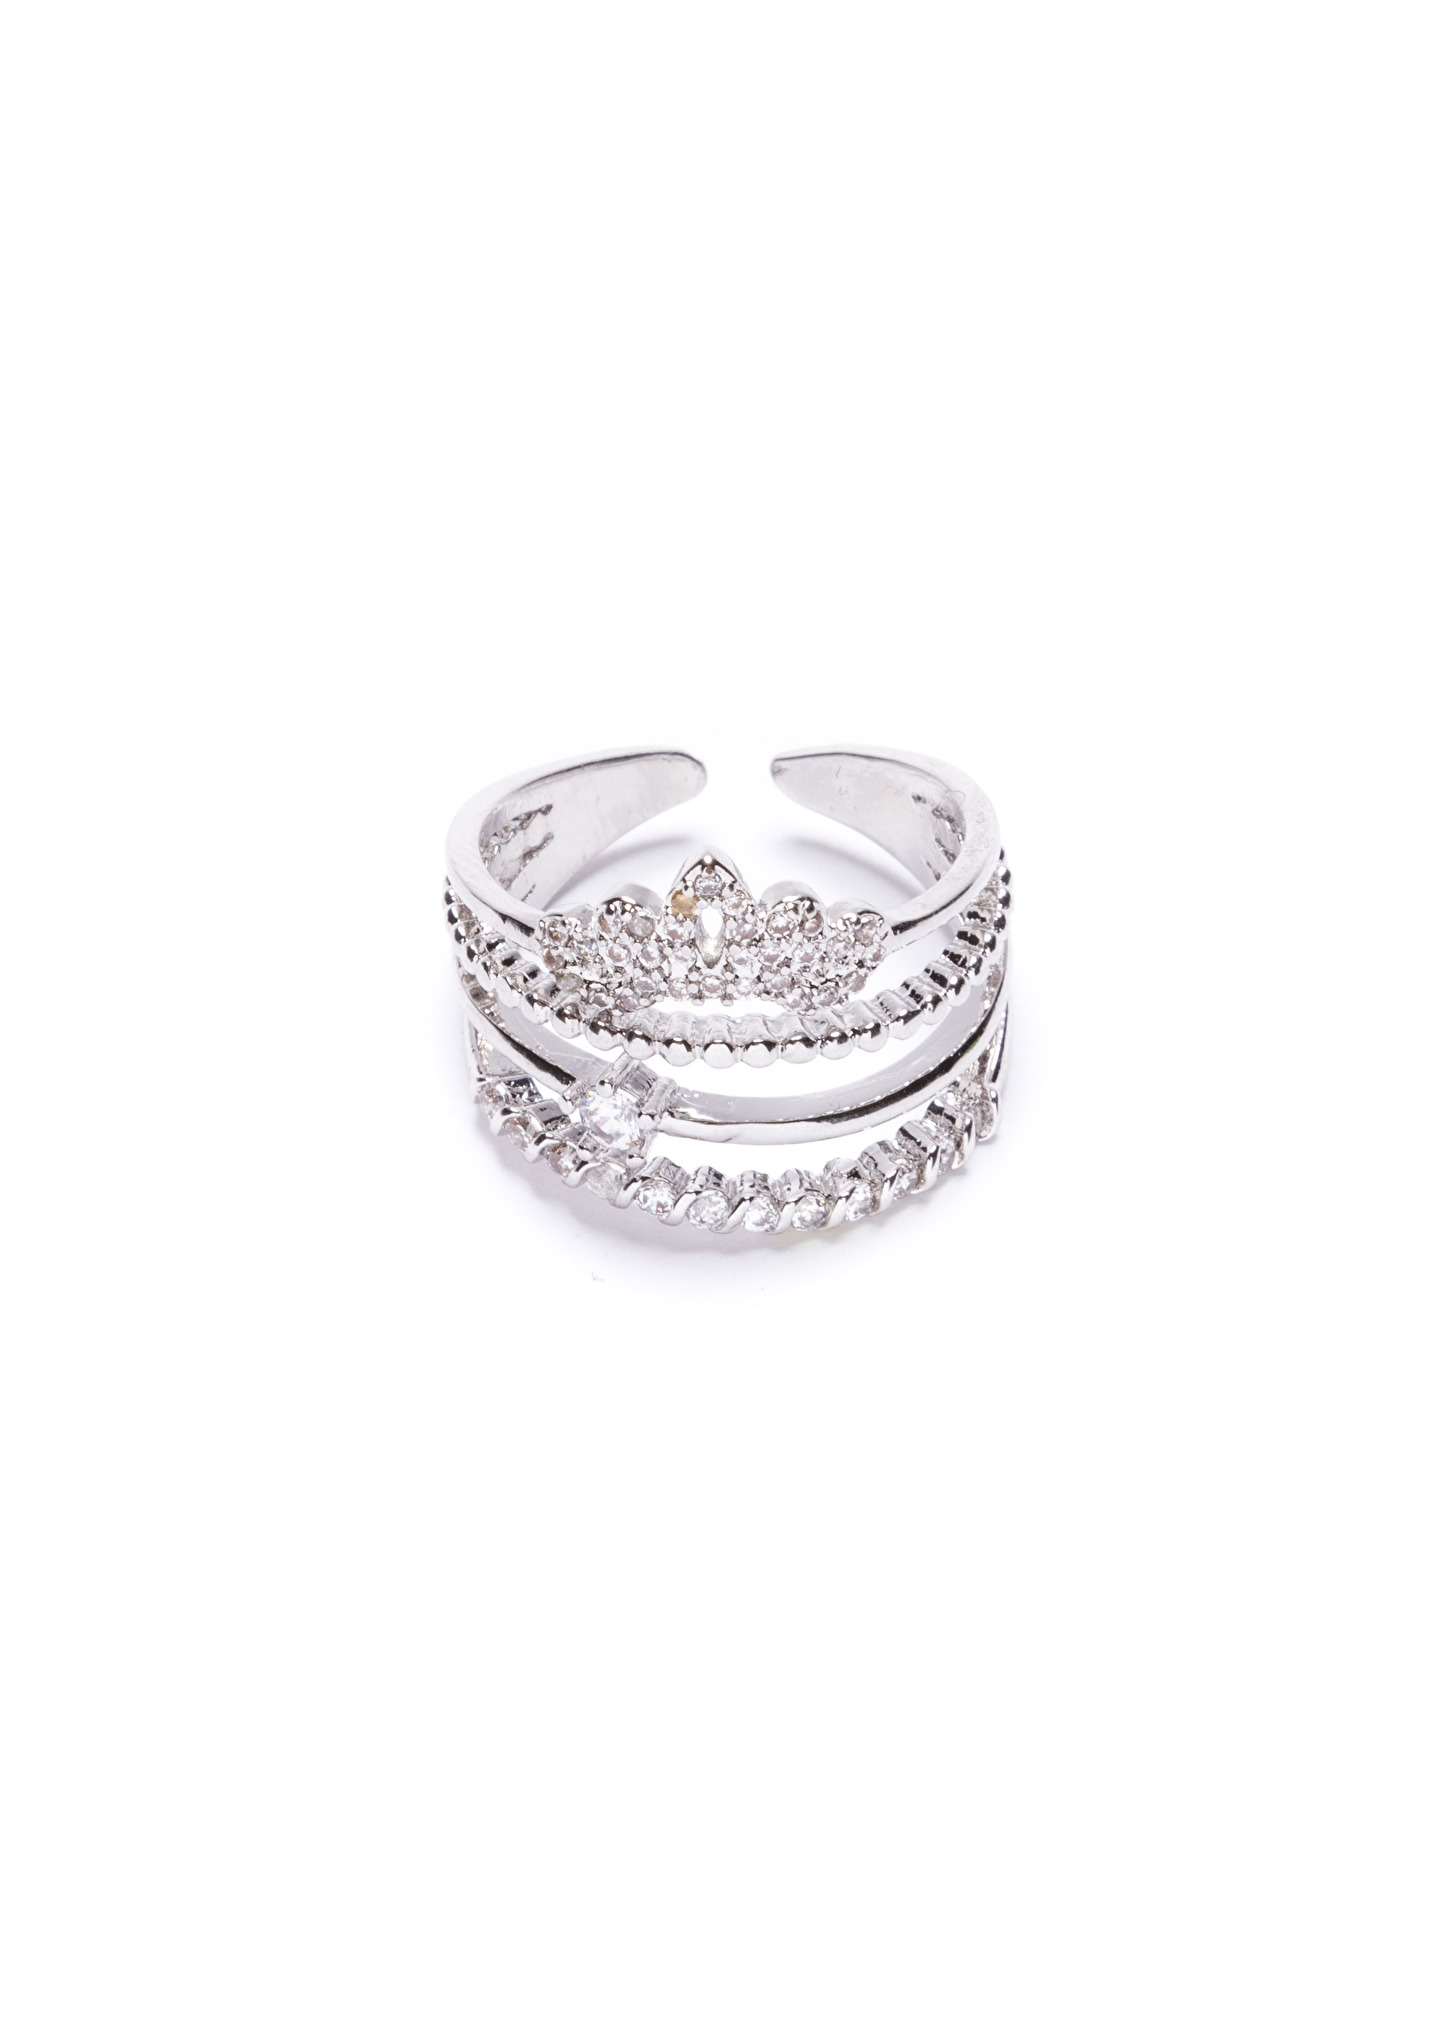 Knigin Krone Ring in Silber  Happiness Boutique